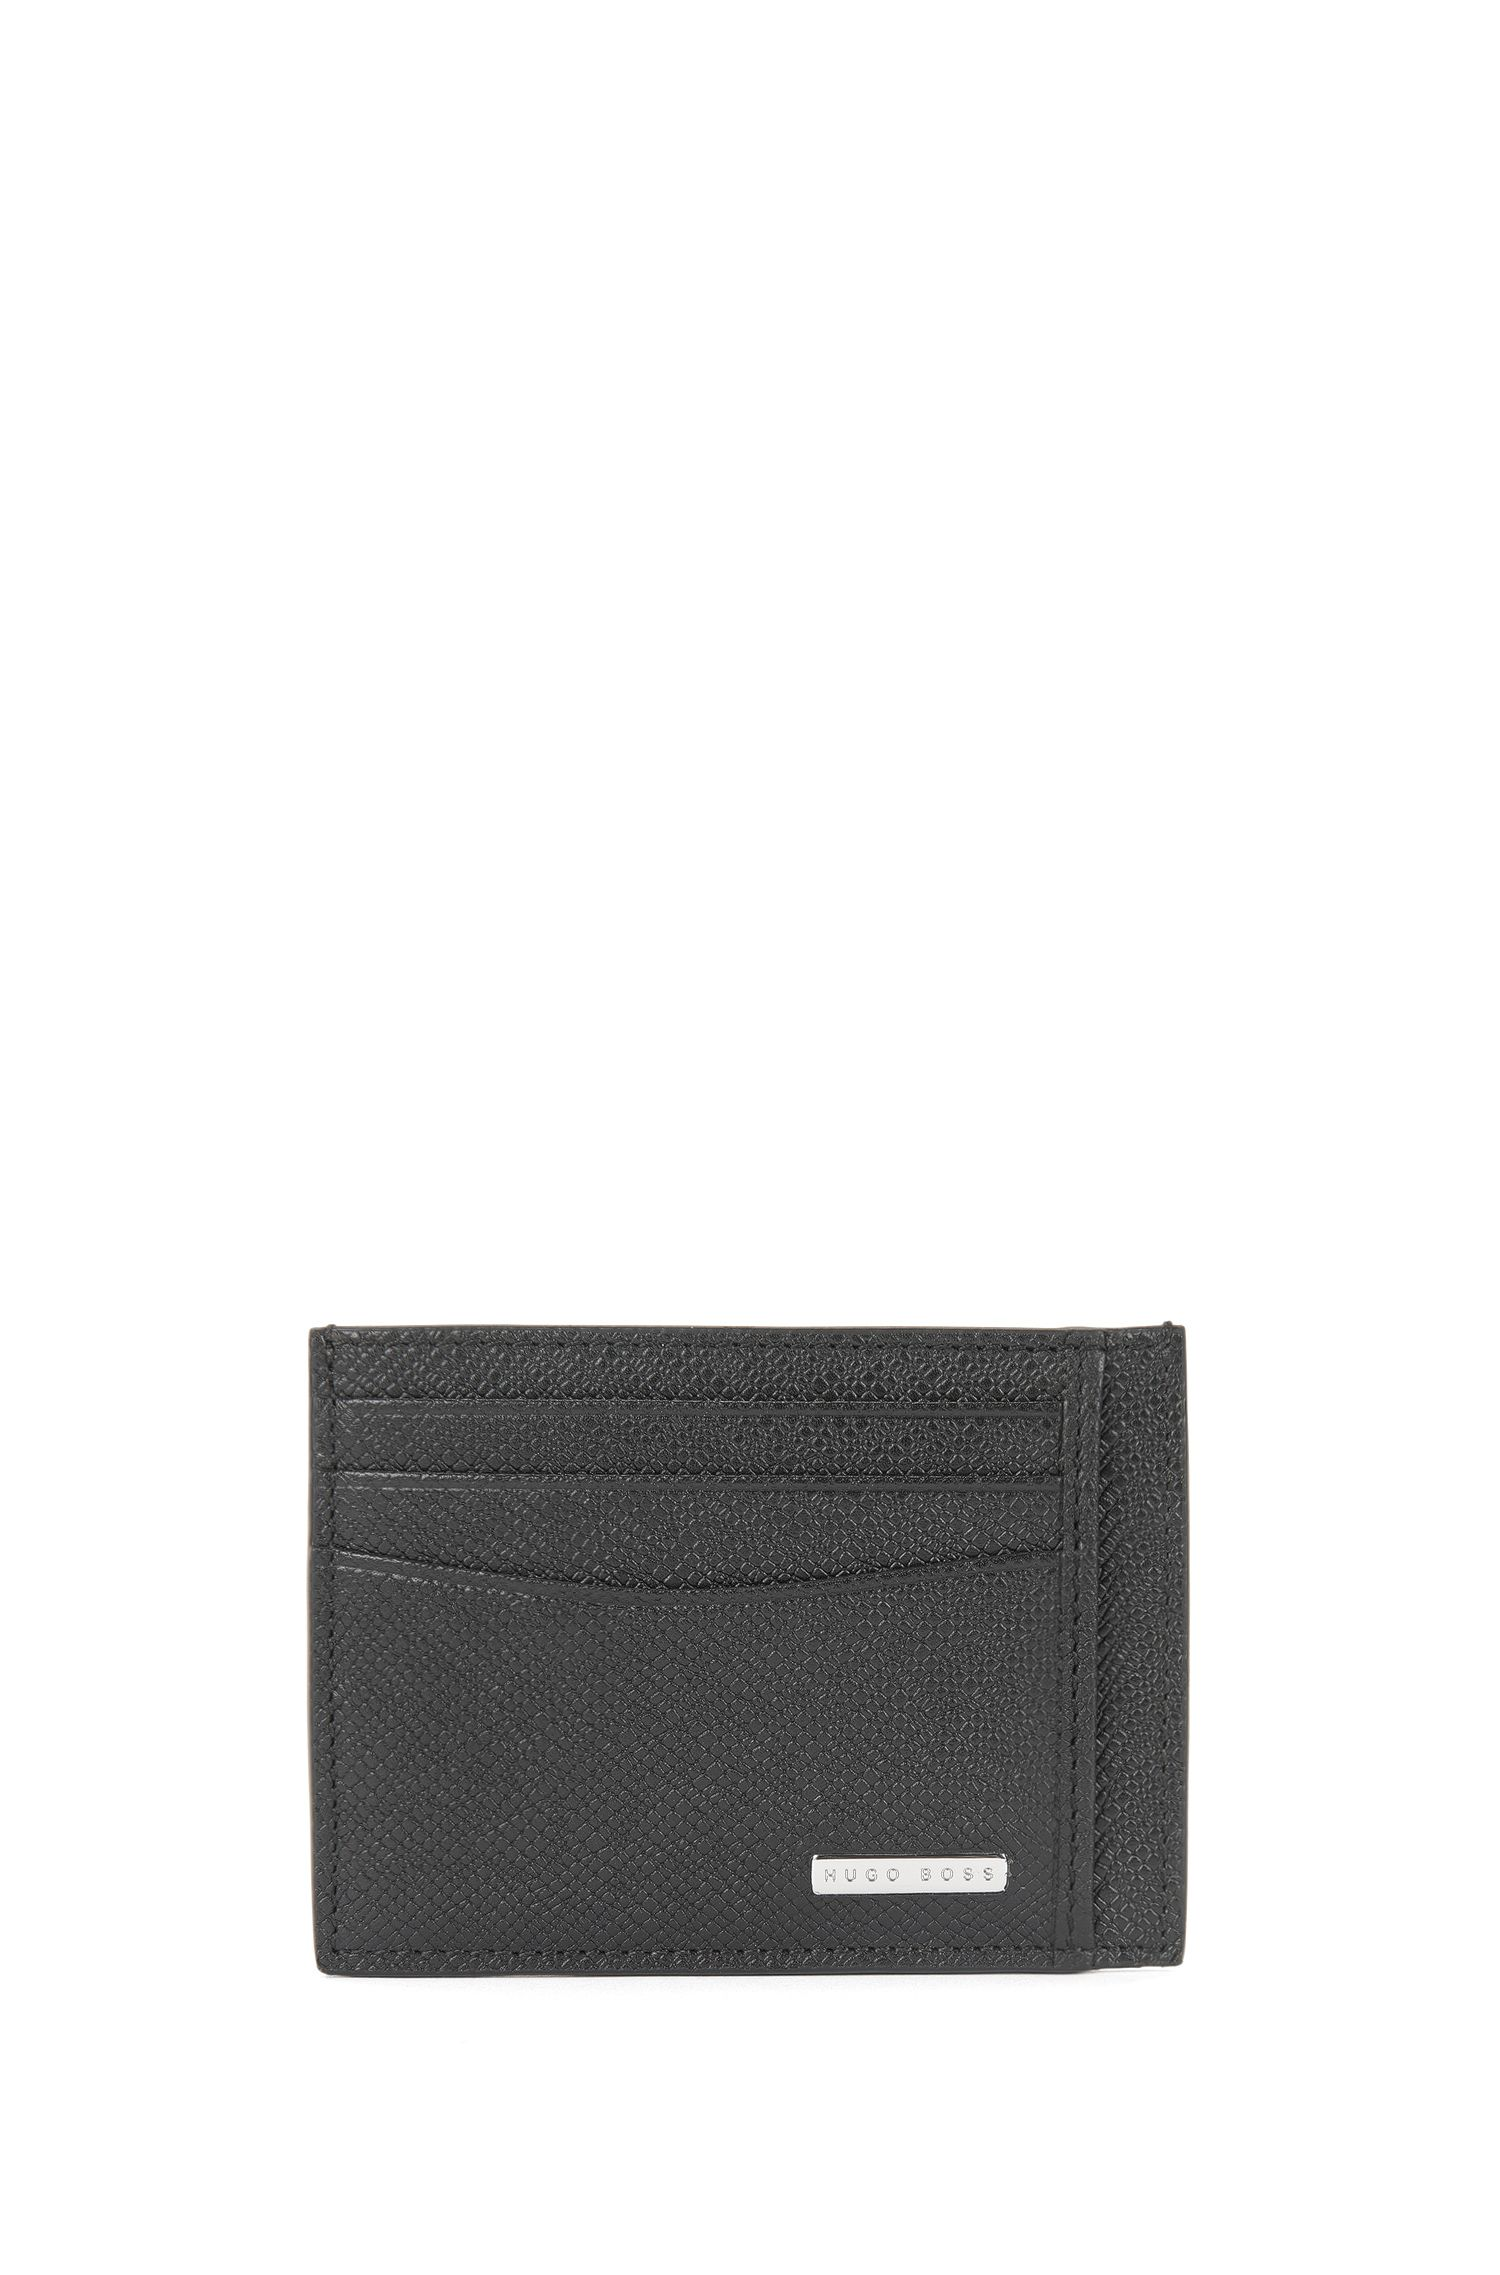 Palmellato-Embossed Leather Card Holder | Signature S Card N